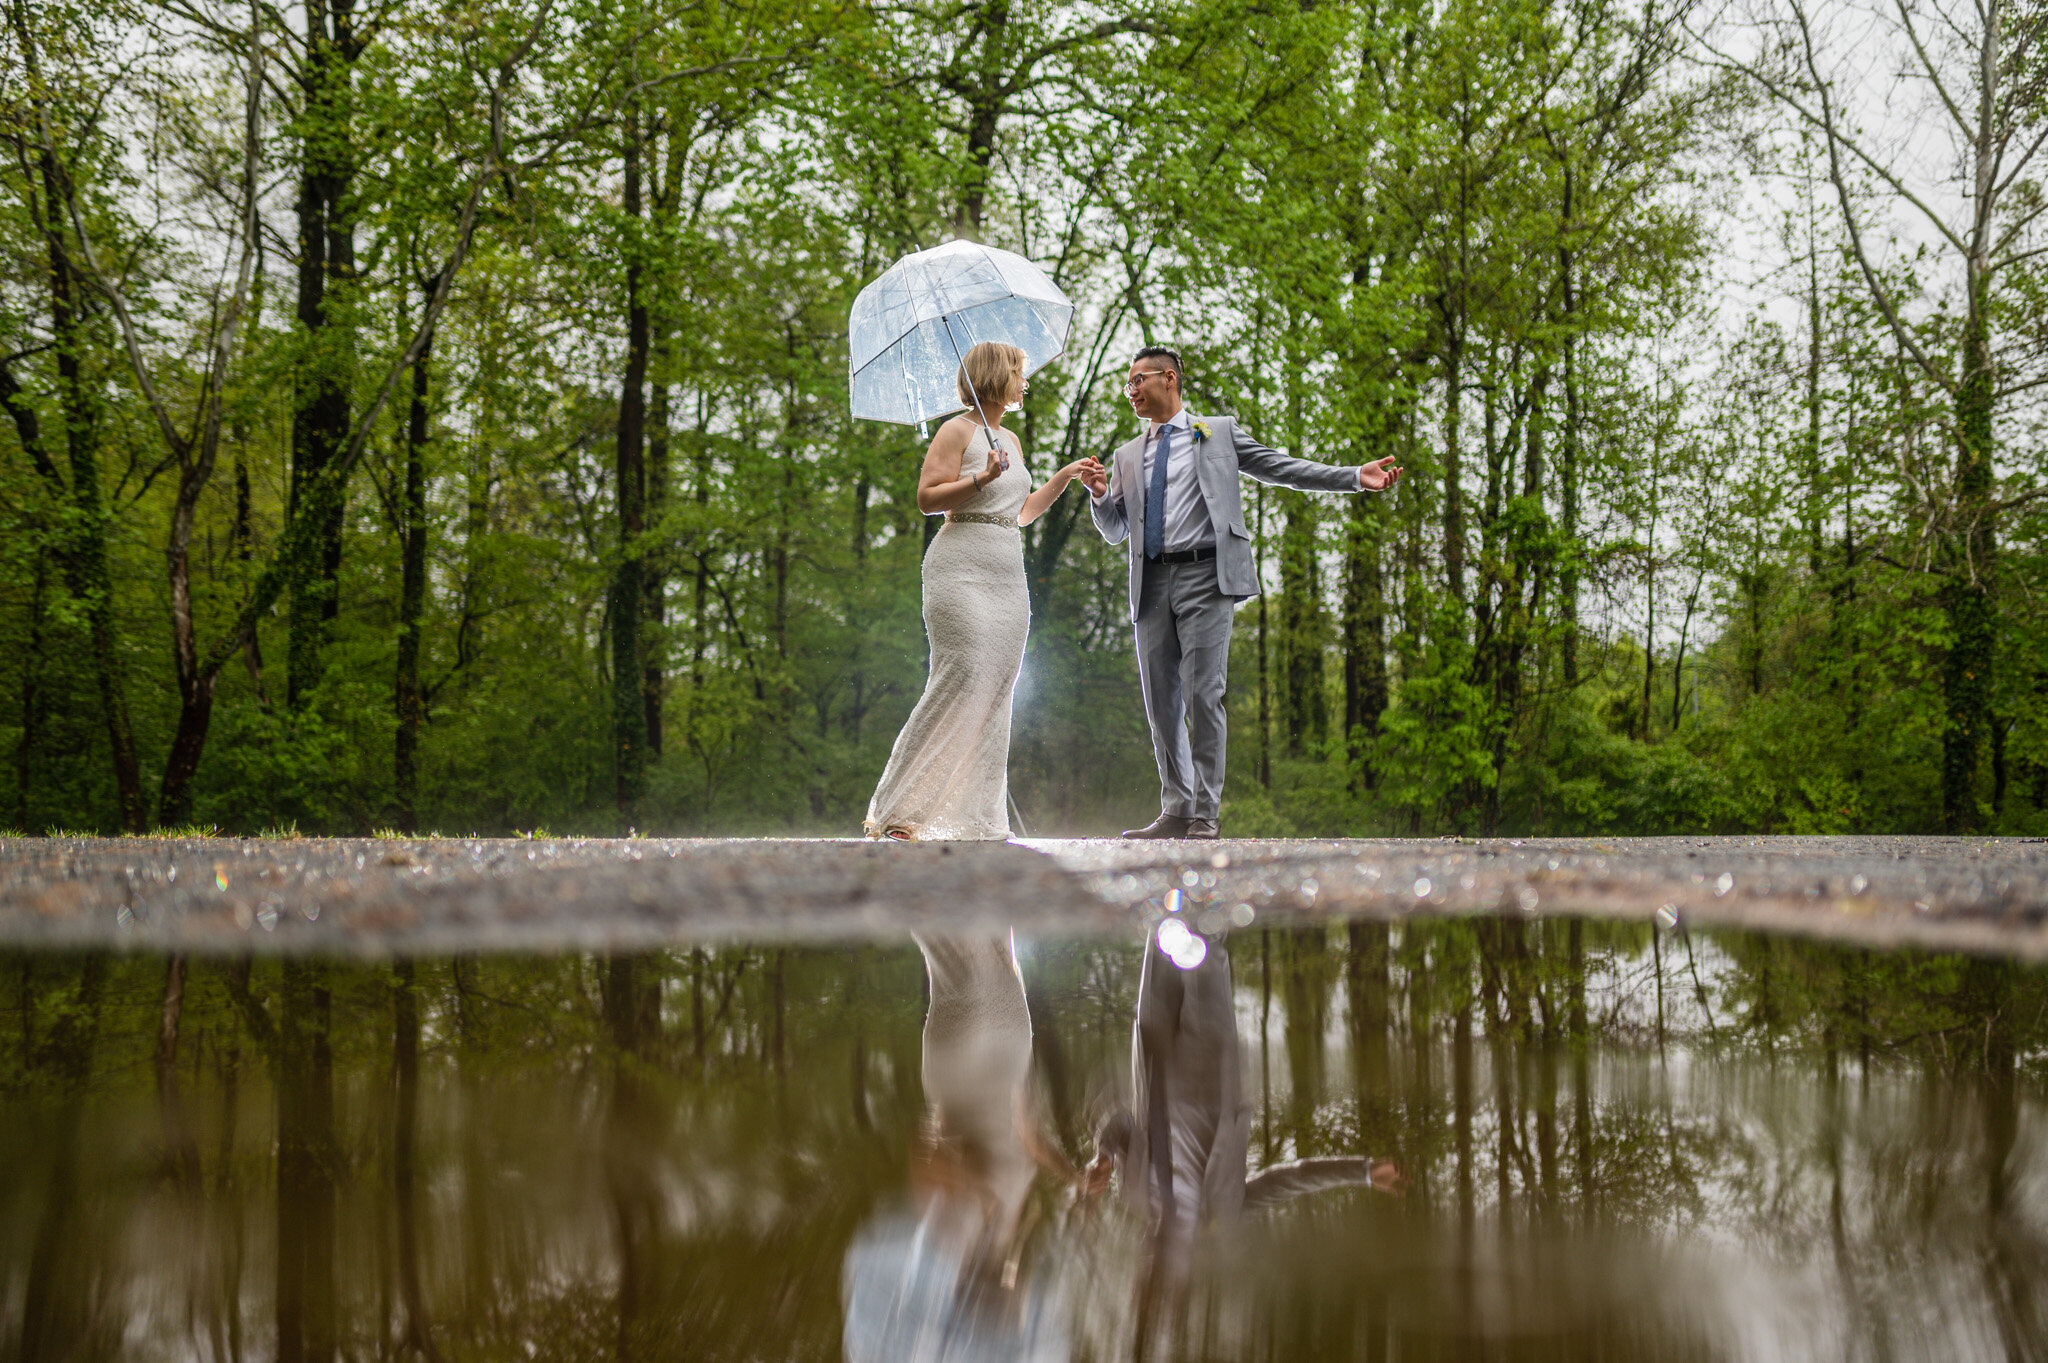 Elopement wedding portraits